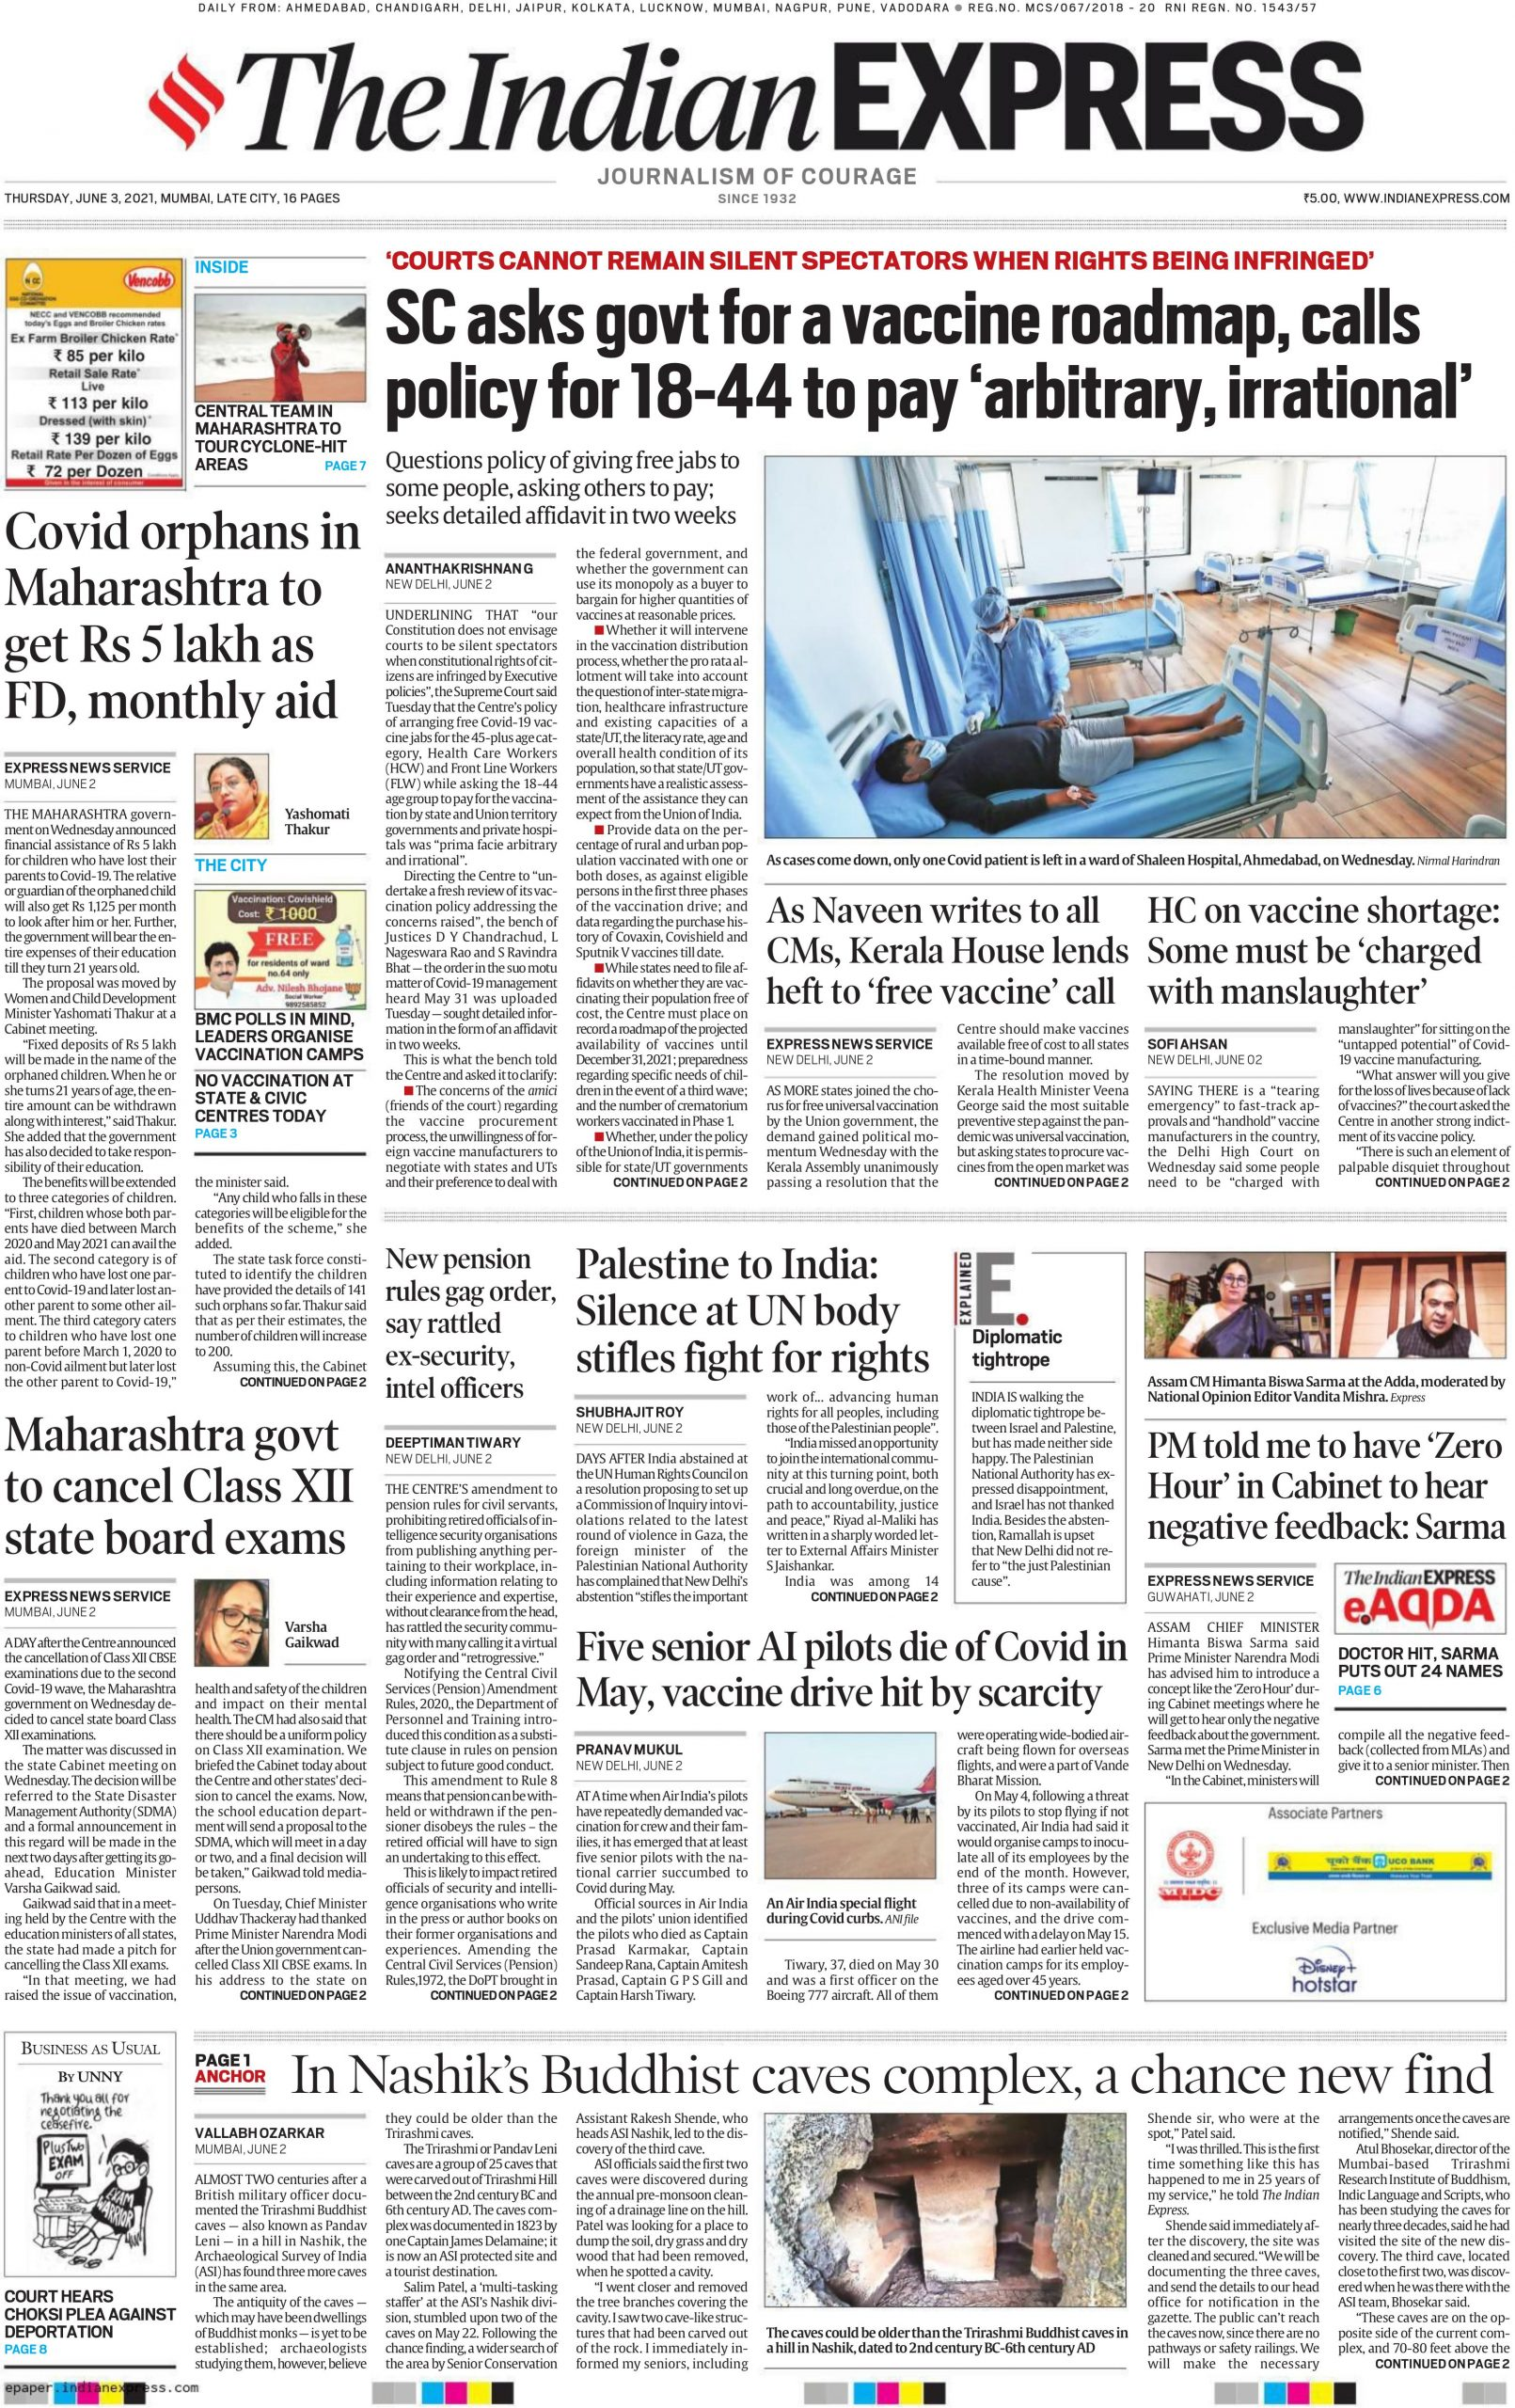 The Indian Express 3rd June 2021